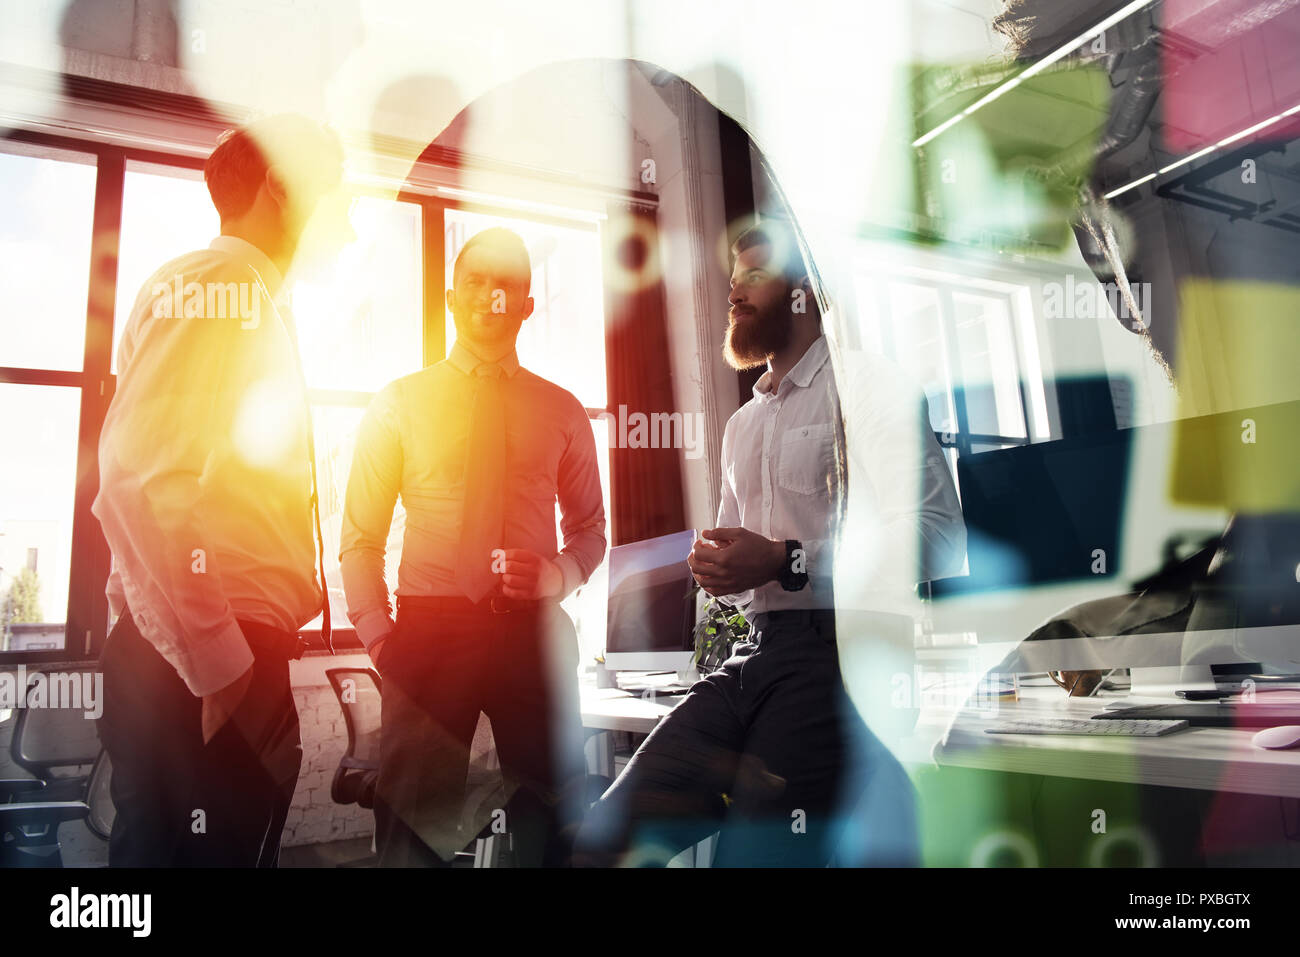 Business people work together in office. Concept of teamwork and partnership. double exposure with light effects - Stock Image